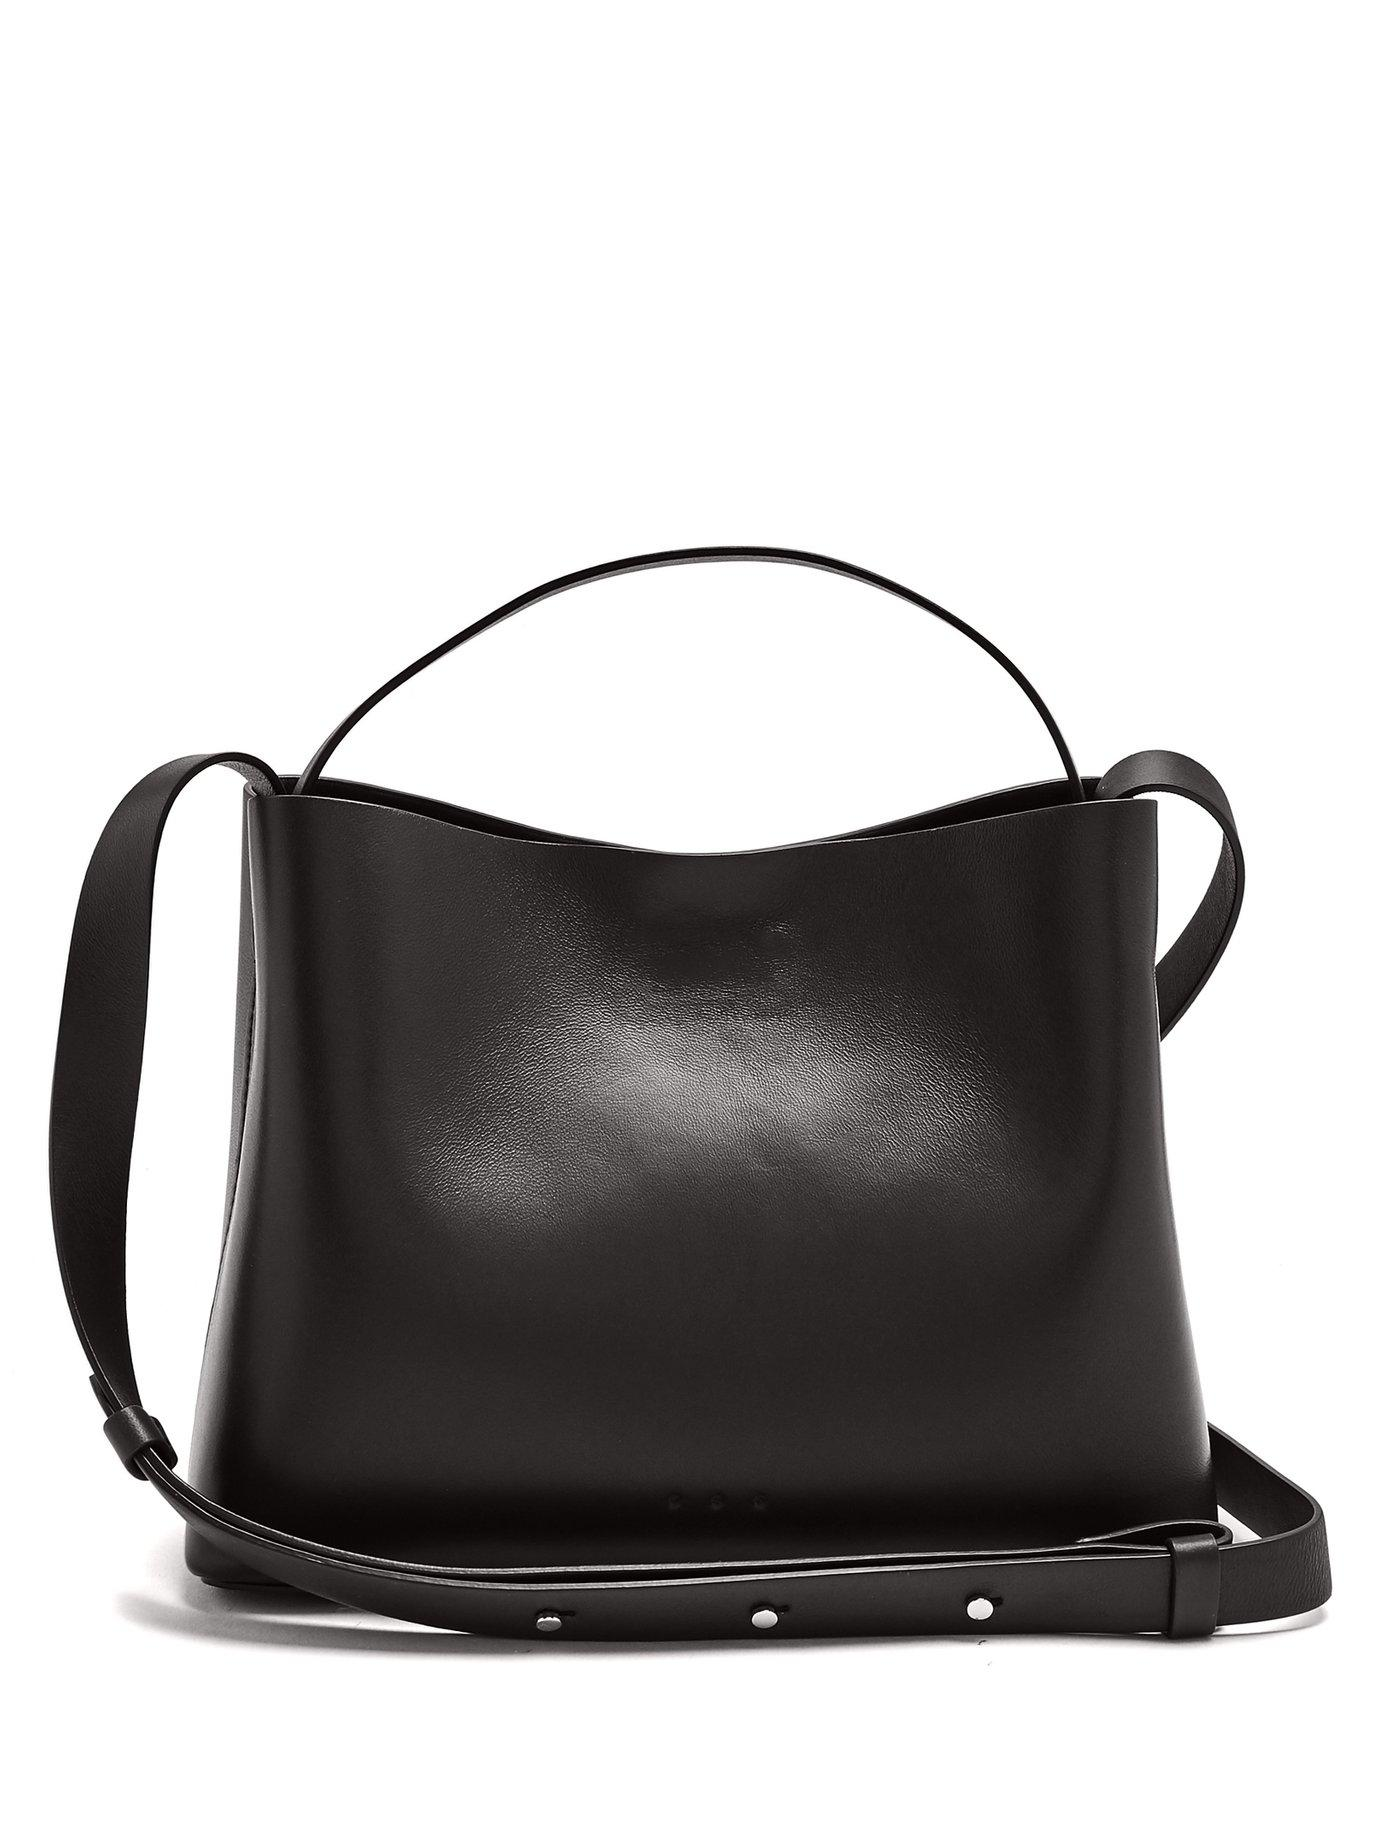 Aesther Ekme Sac Mini Leather Tote Bag In Black  48da957335853